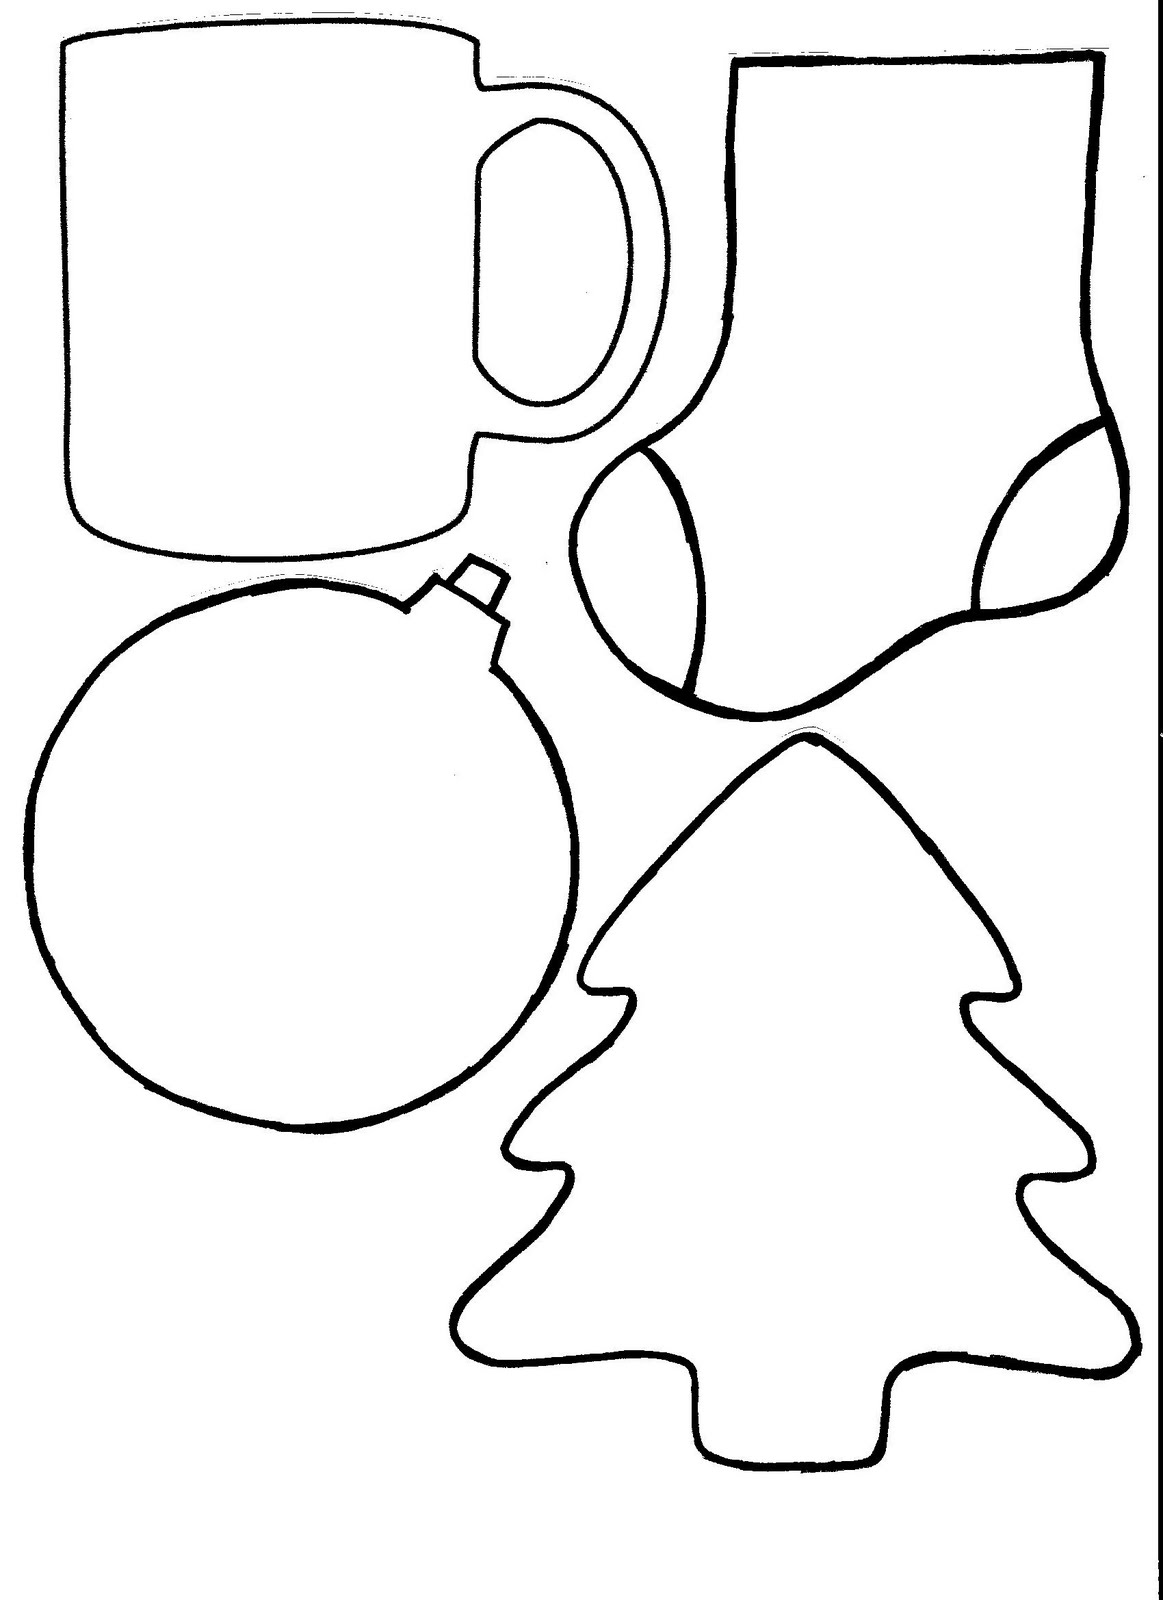 Peaceful image regarding printable shape templates